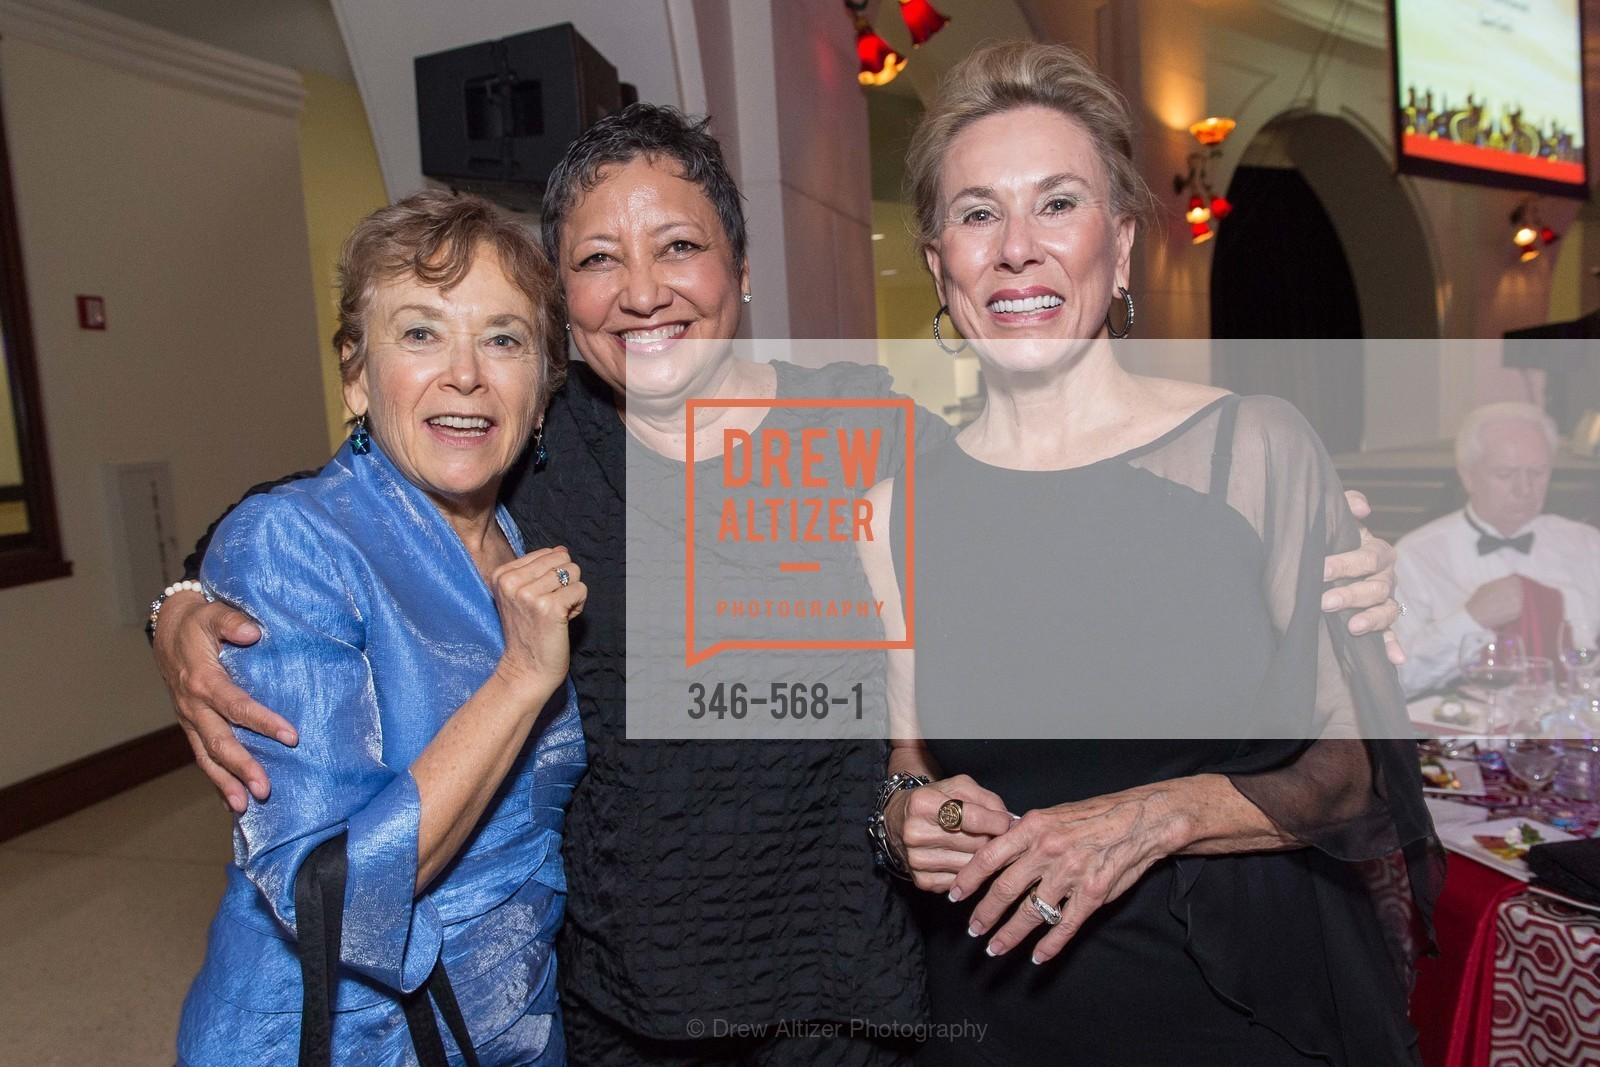 Sheila Jordan, Vctoria Jones, Hilda Elmore, SOTHEBY'S  Hosts a Private Viewing of Highlights from the Collection of MRS. PAUL MELLON, US, September 17th, 2014,Drew Altizer, Drew Altizer Photography, full-service event agency, private events, San Francisco photographer, photographer California